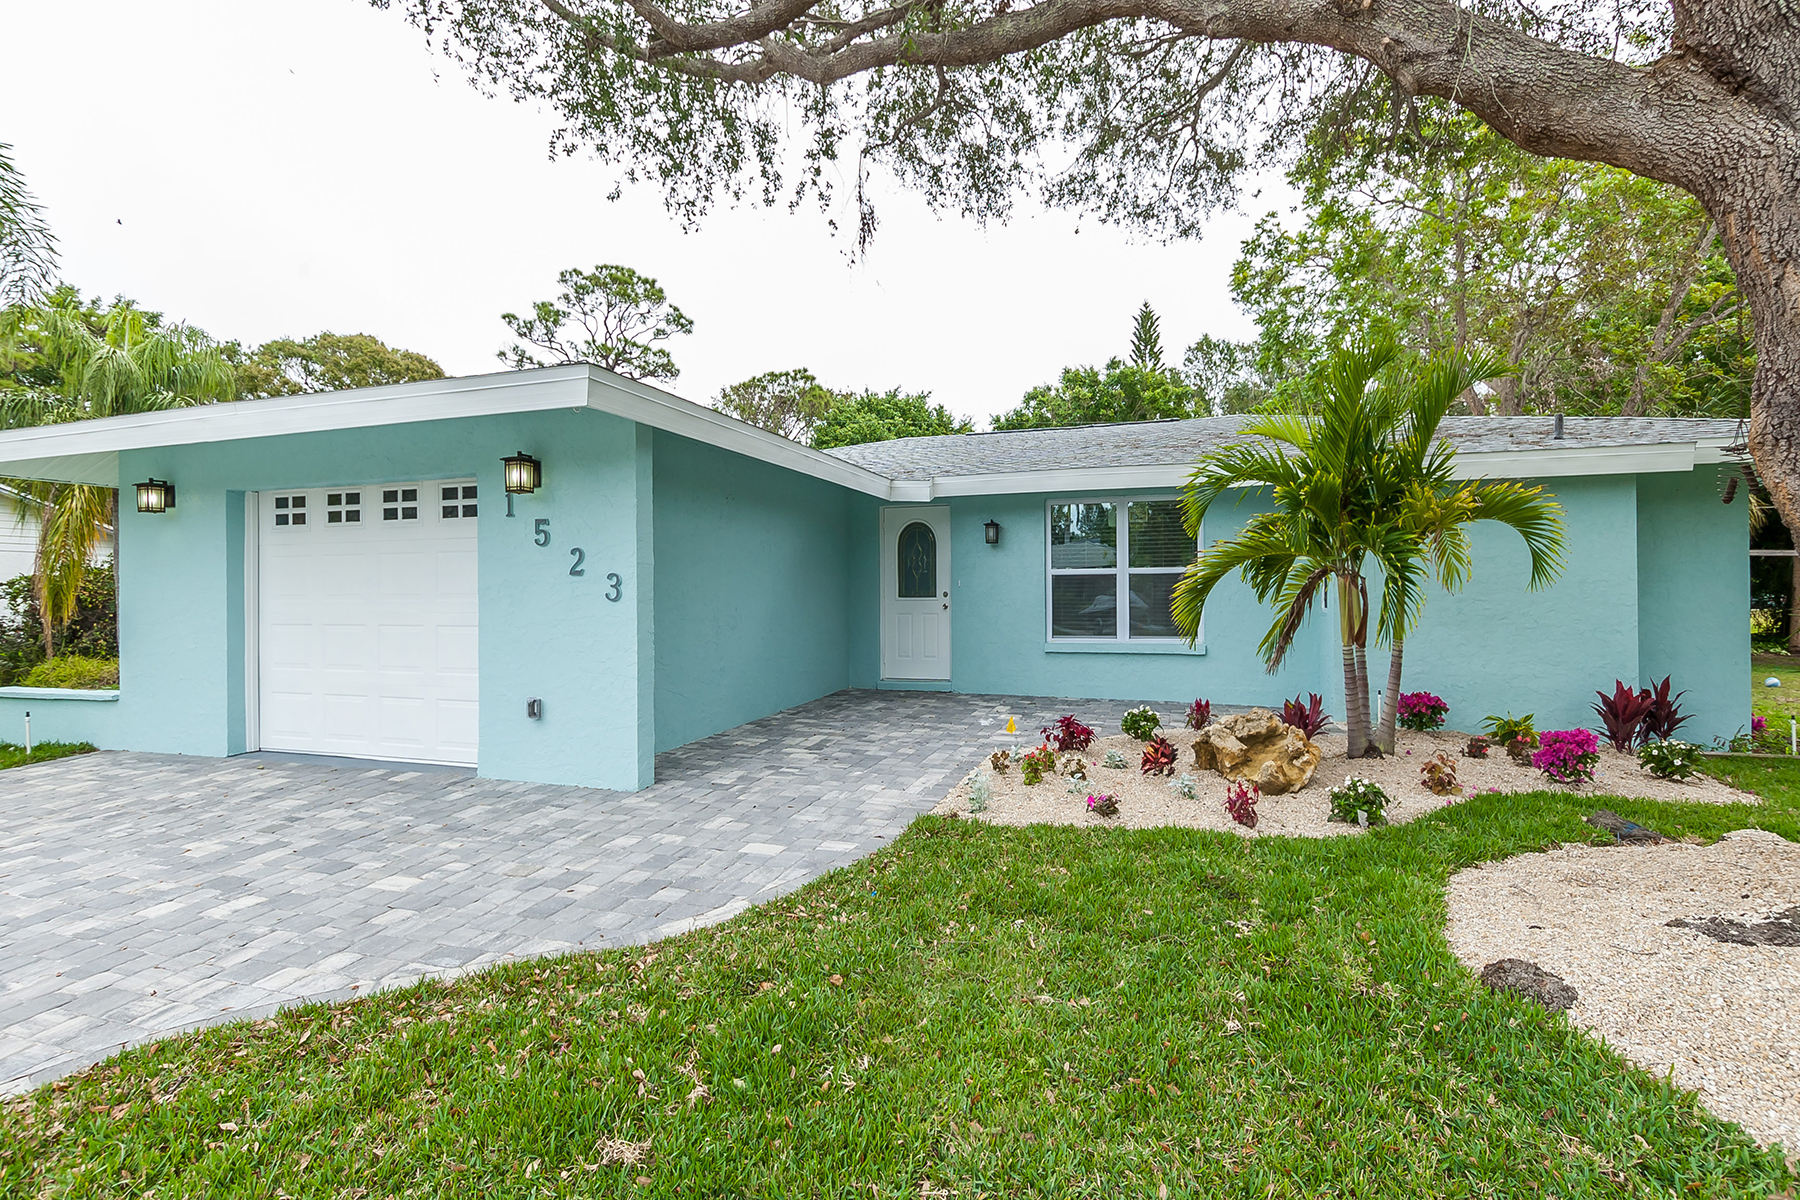 Single Family Home for Sale at ELYSIAN HEIGHTS 1523 84th St NW, Bradenton, Florida, 34209 United States